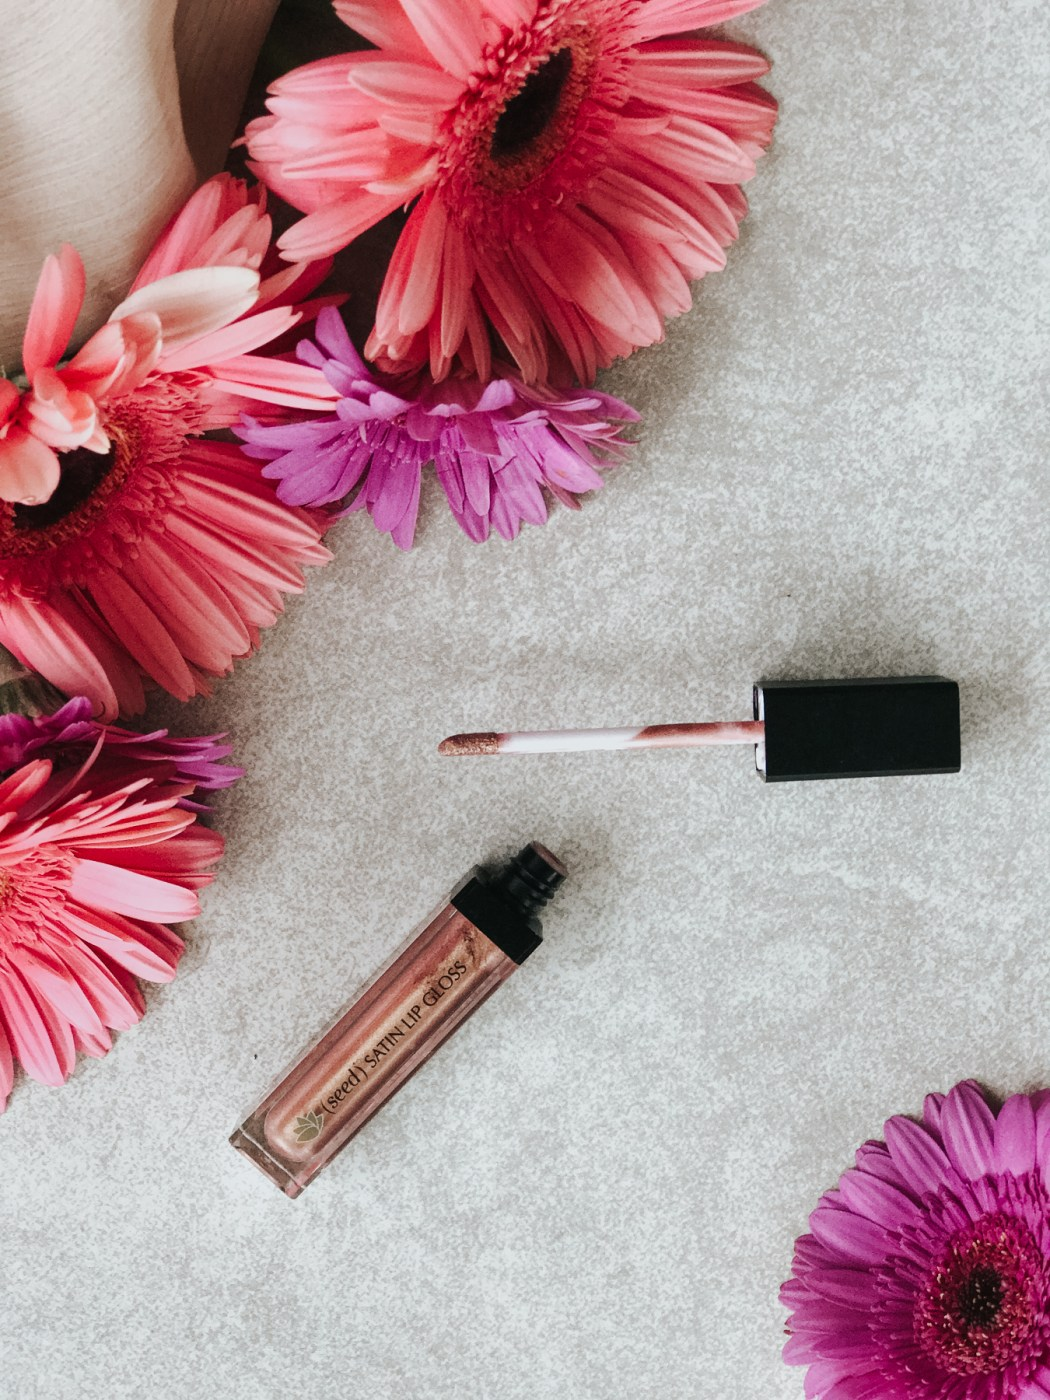 Seed Body Care's Satin Lip Glass softens your lips, is packed with nourishing seed ingredients, and the colors are GORGEOUS. It's also cruelty-free, paraben-free, phthalate-free, and lead-free. This all natural lip color gives a subtle, satiny shine.